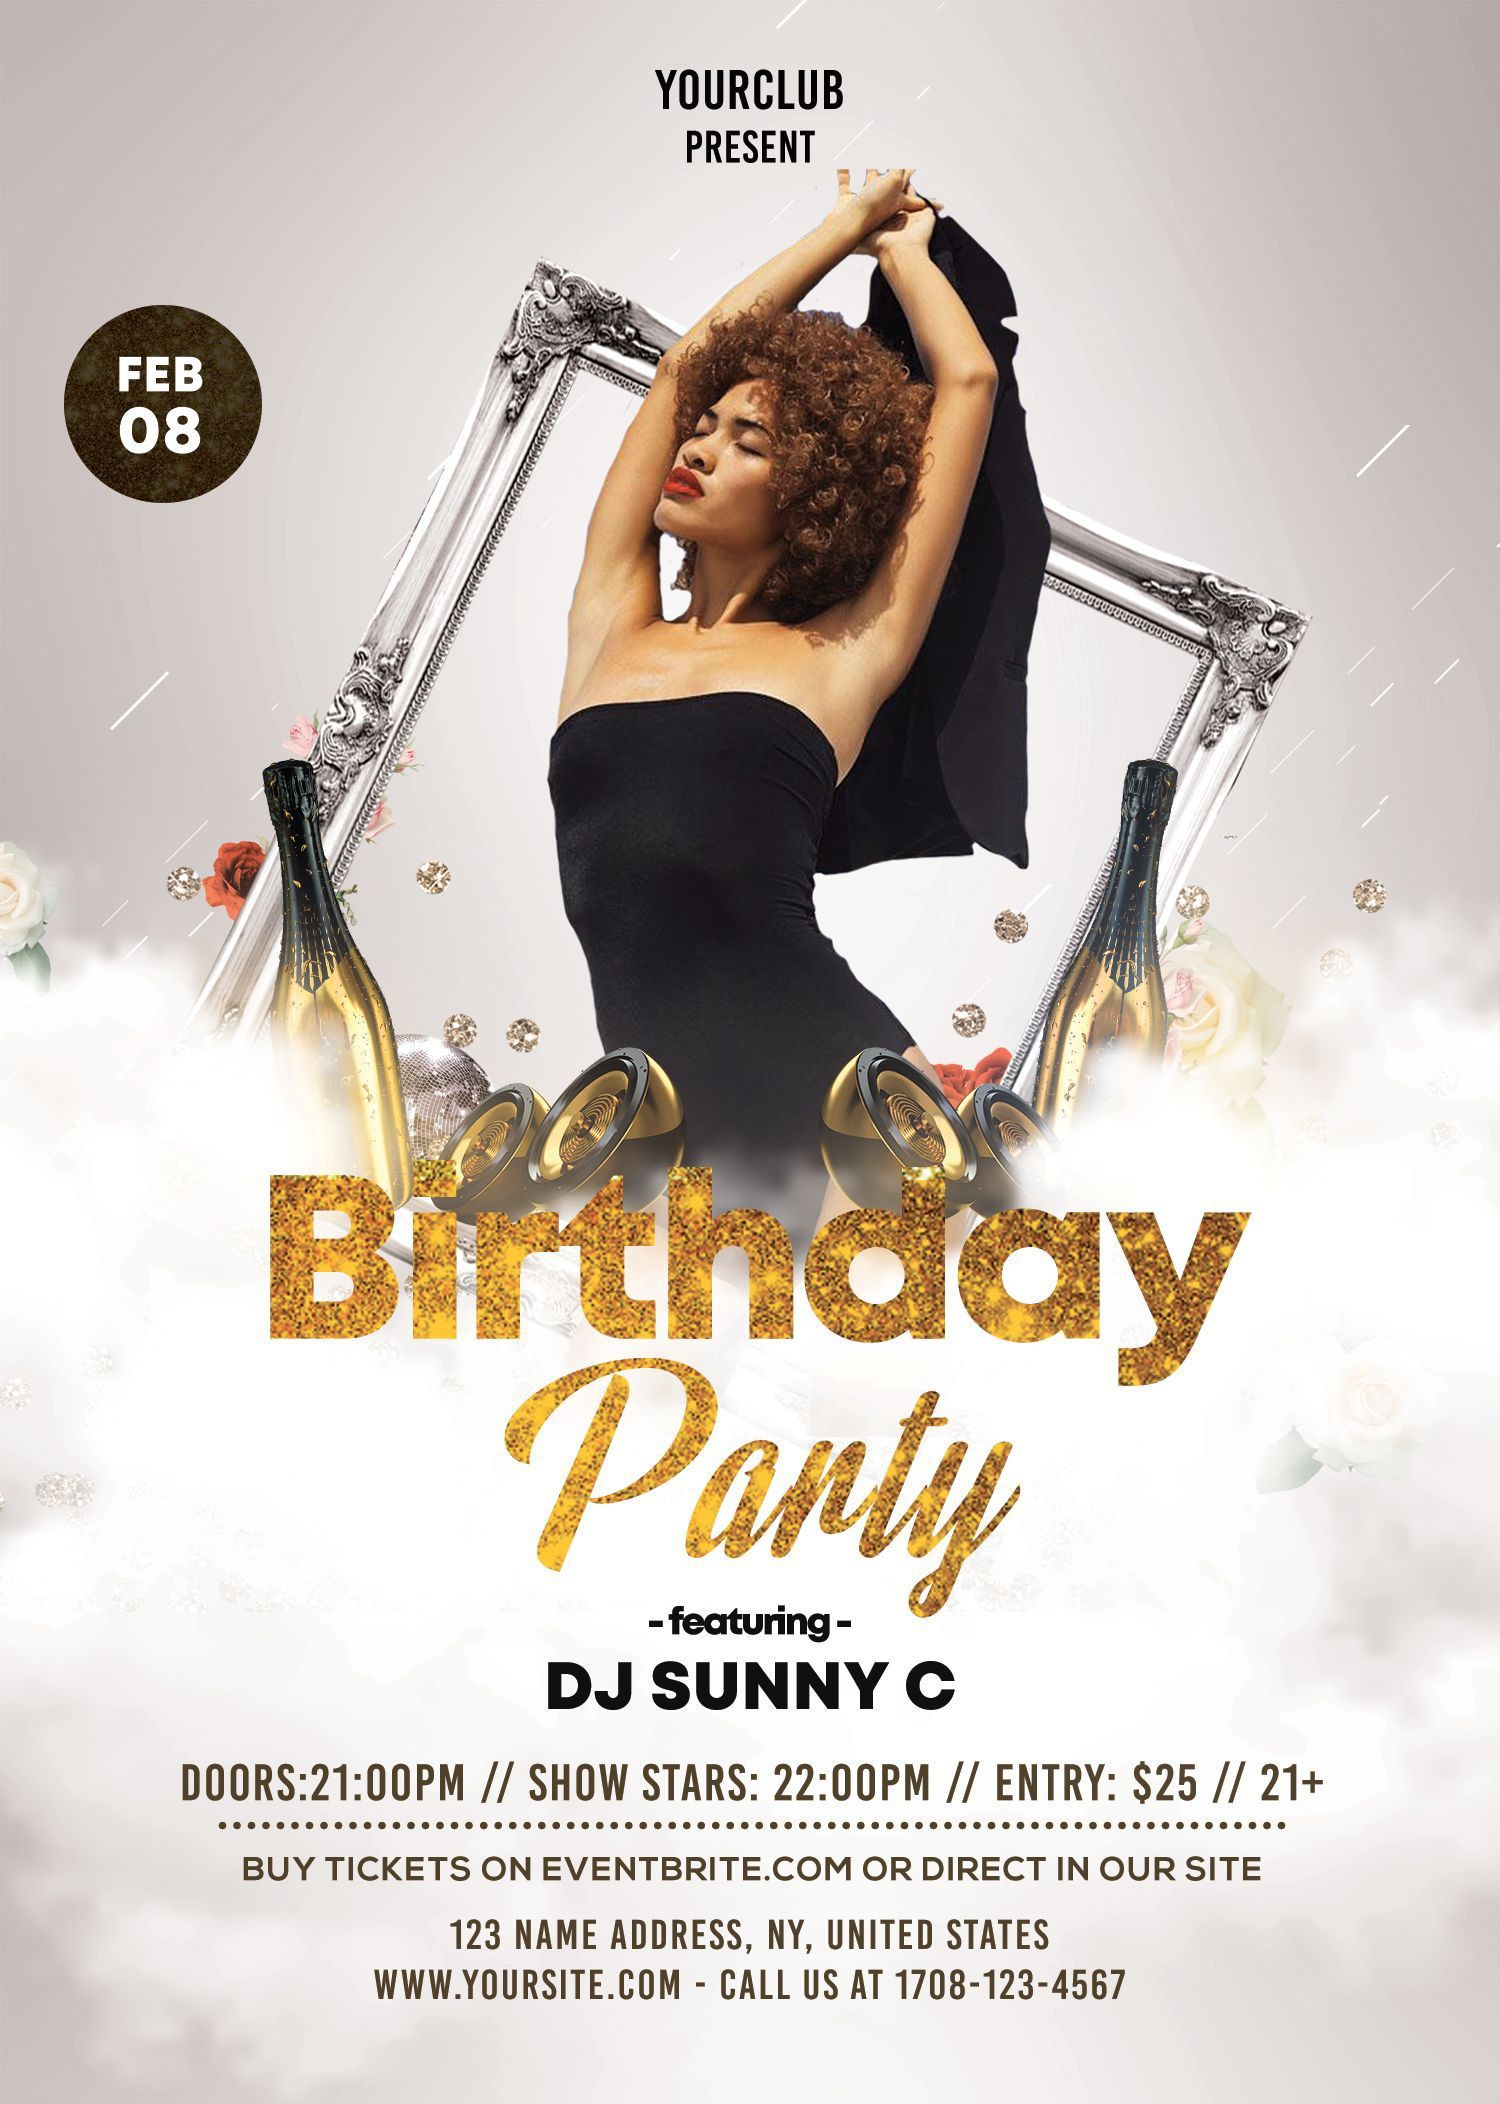 003 Archaicawful Party Flyer Template Free Photoshop Idea  Birthday Psd Masquerade -Full